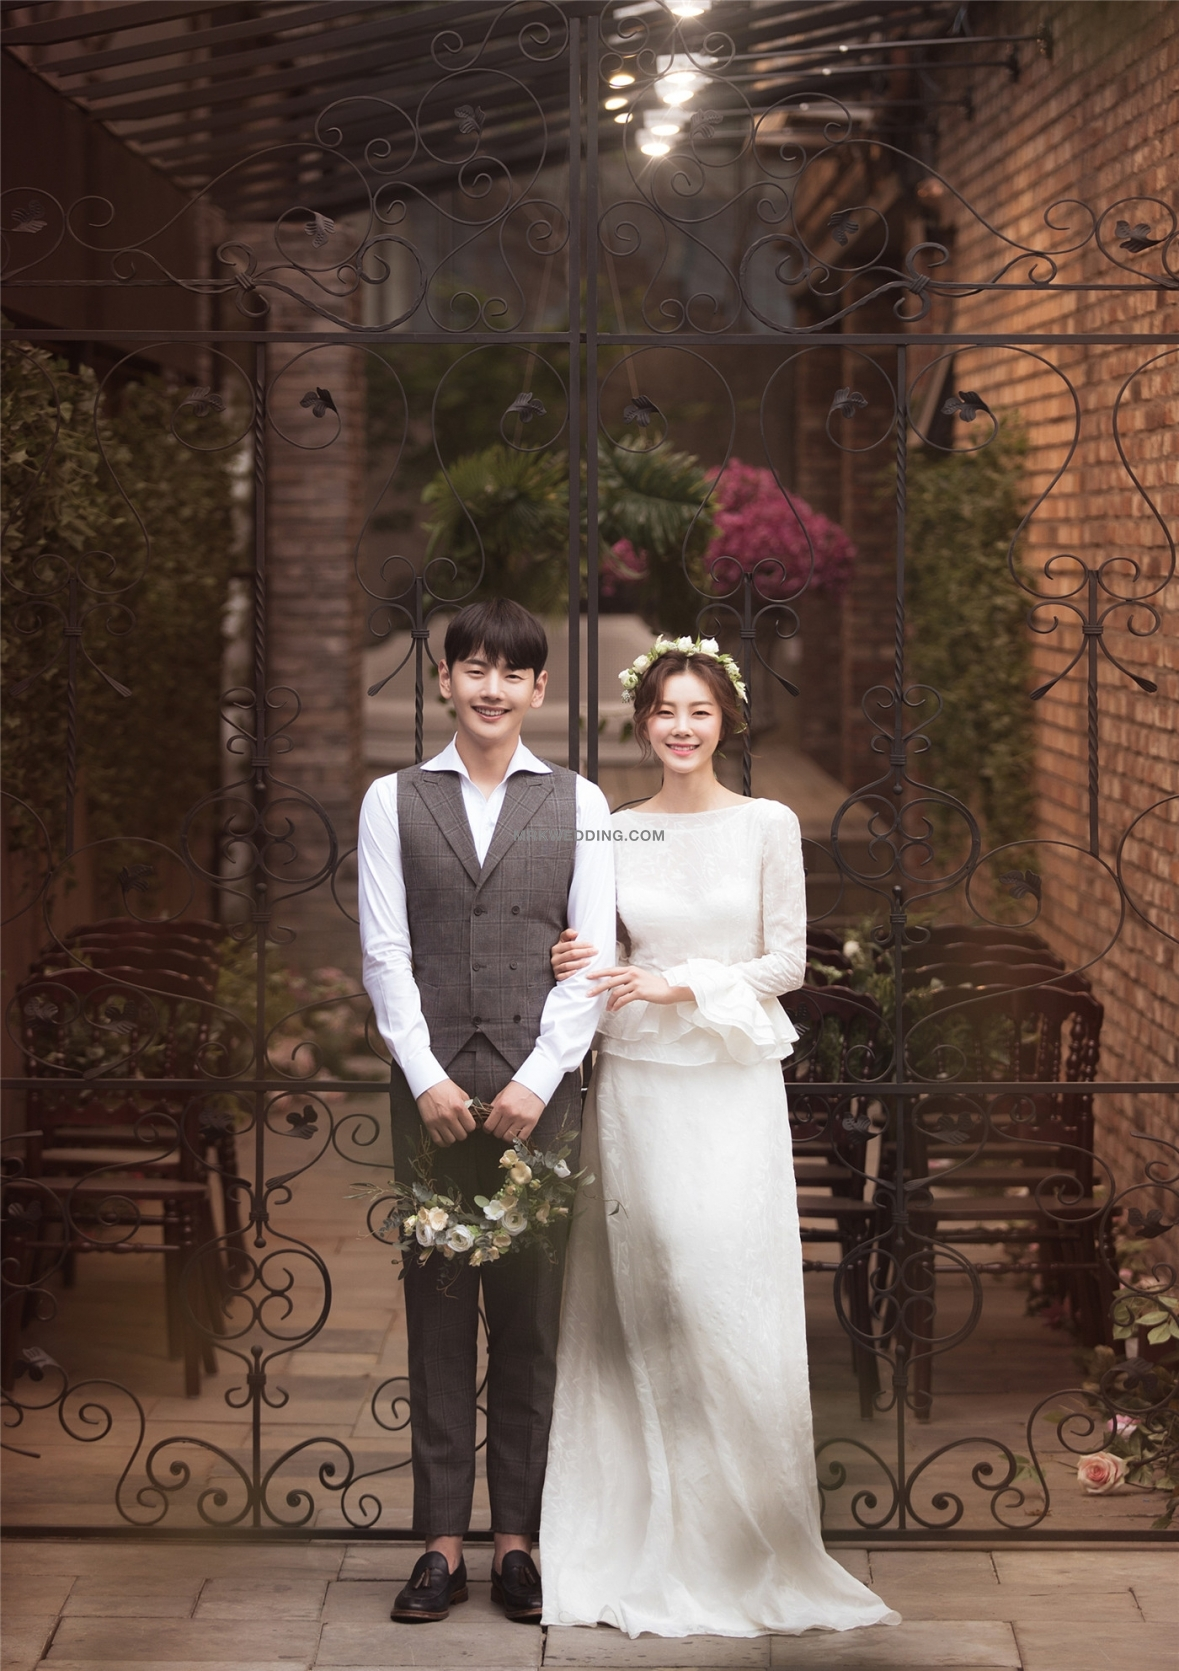 koreaprewedding23.jpg